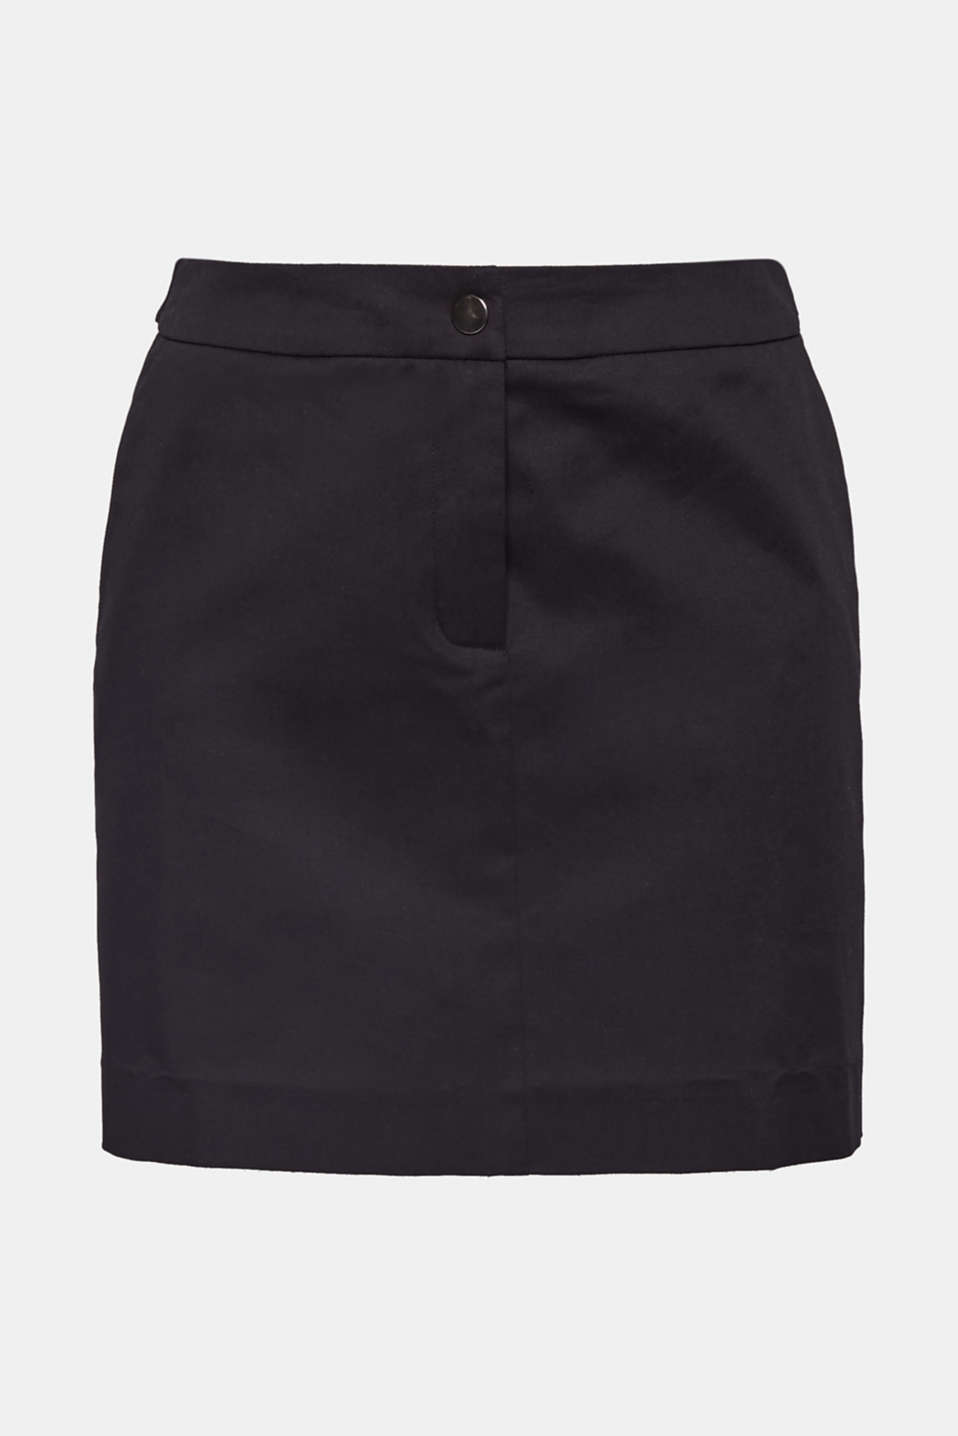 This short, smooth cotton skirt containing elastane for added comfort is both sensationally stylish and very versatile for warm summer days.